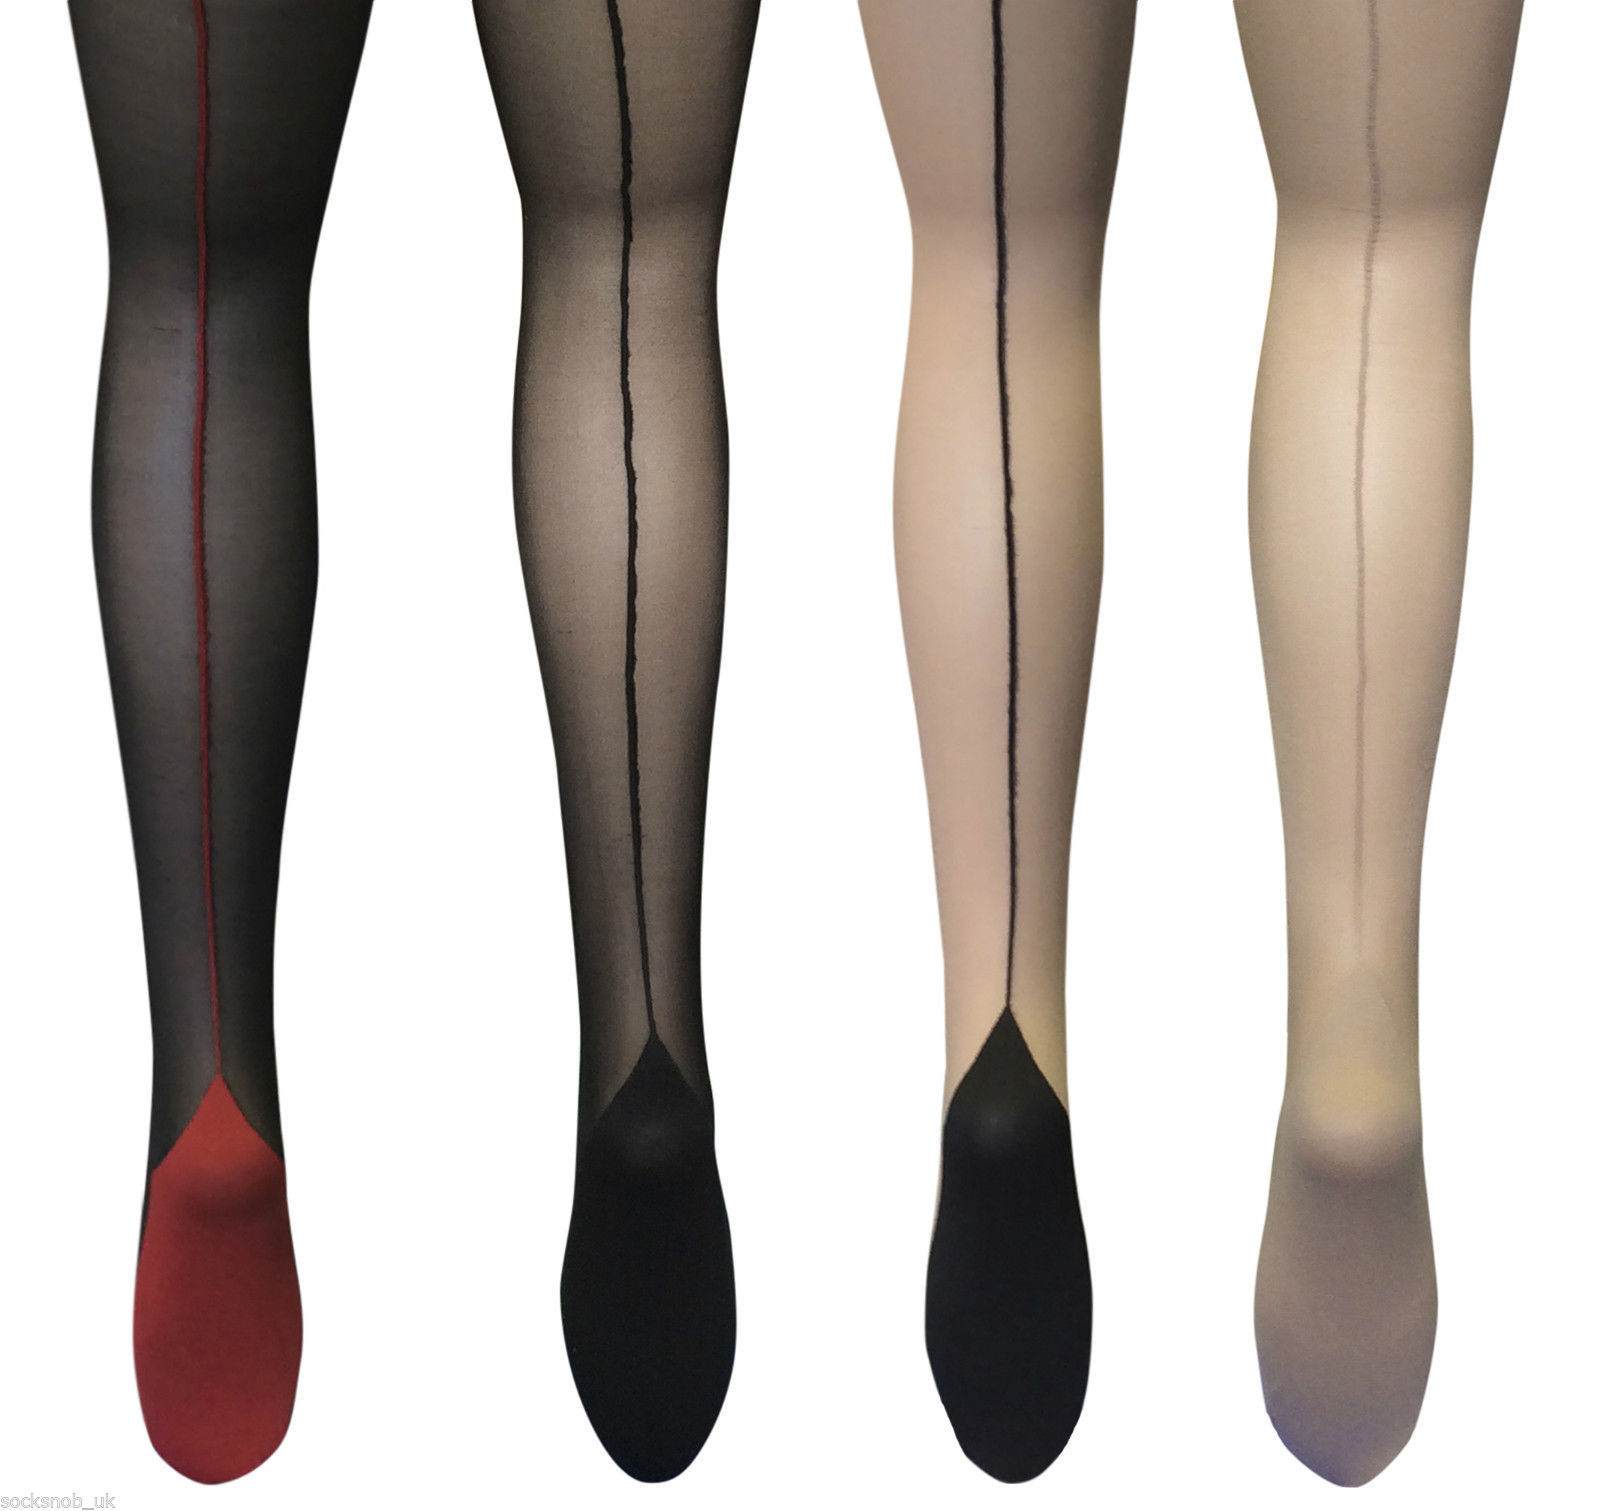 e82130af8e0c3 S l1600. S l1600. Previous. Sock Snob - Ladies Retro Back Seam Designer  sexy 40's Tights Sizes ...